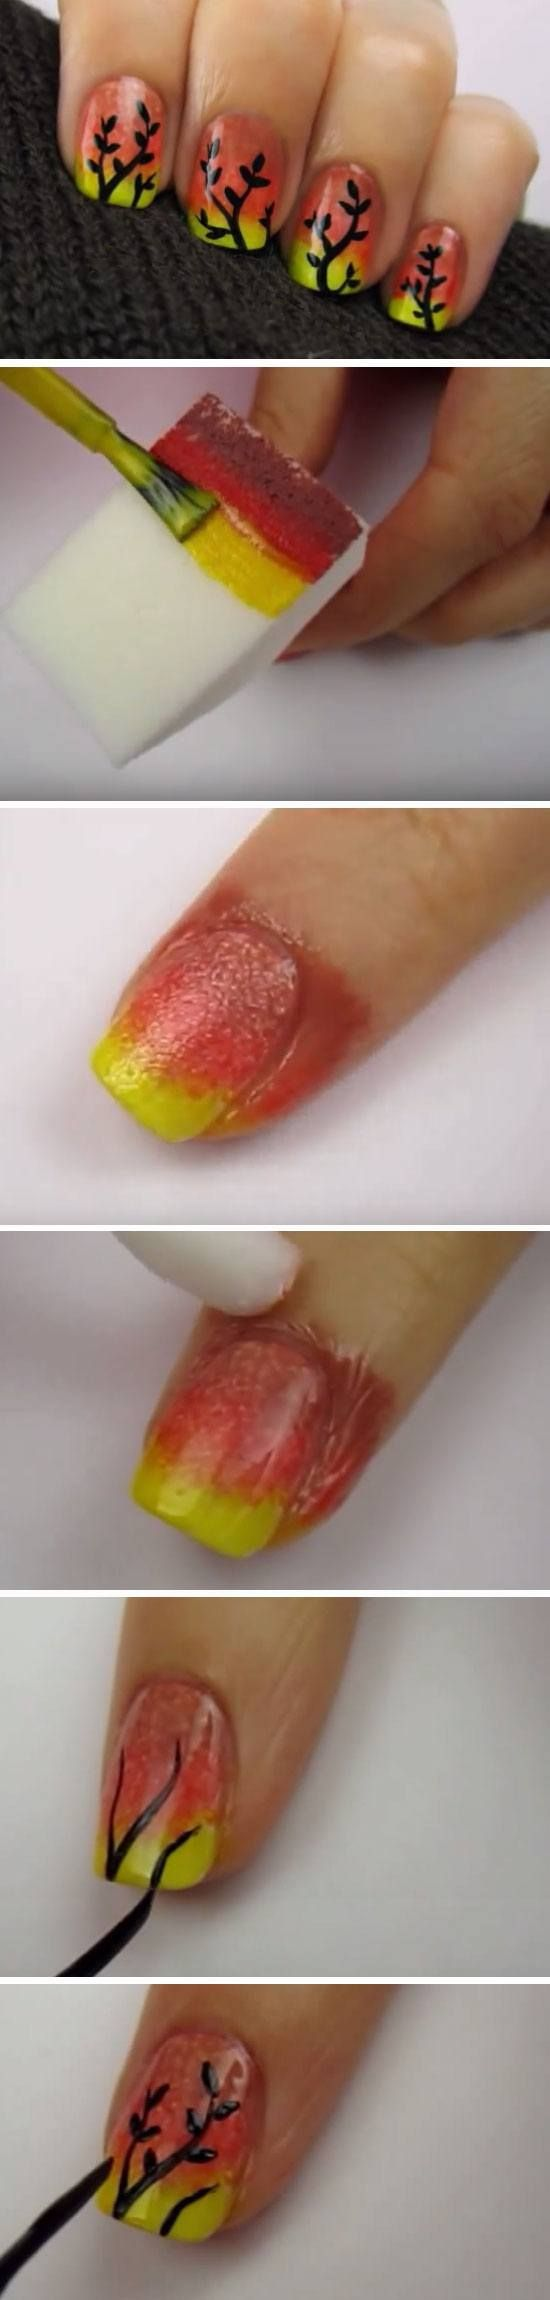 Autumn Ombre Nail Art | Easy Fall Nail Designs for Short Nails